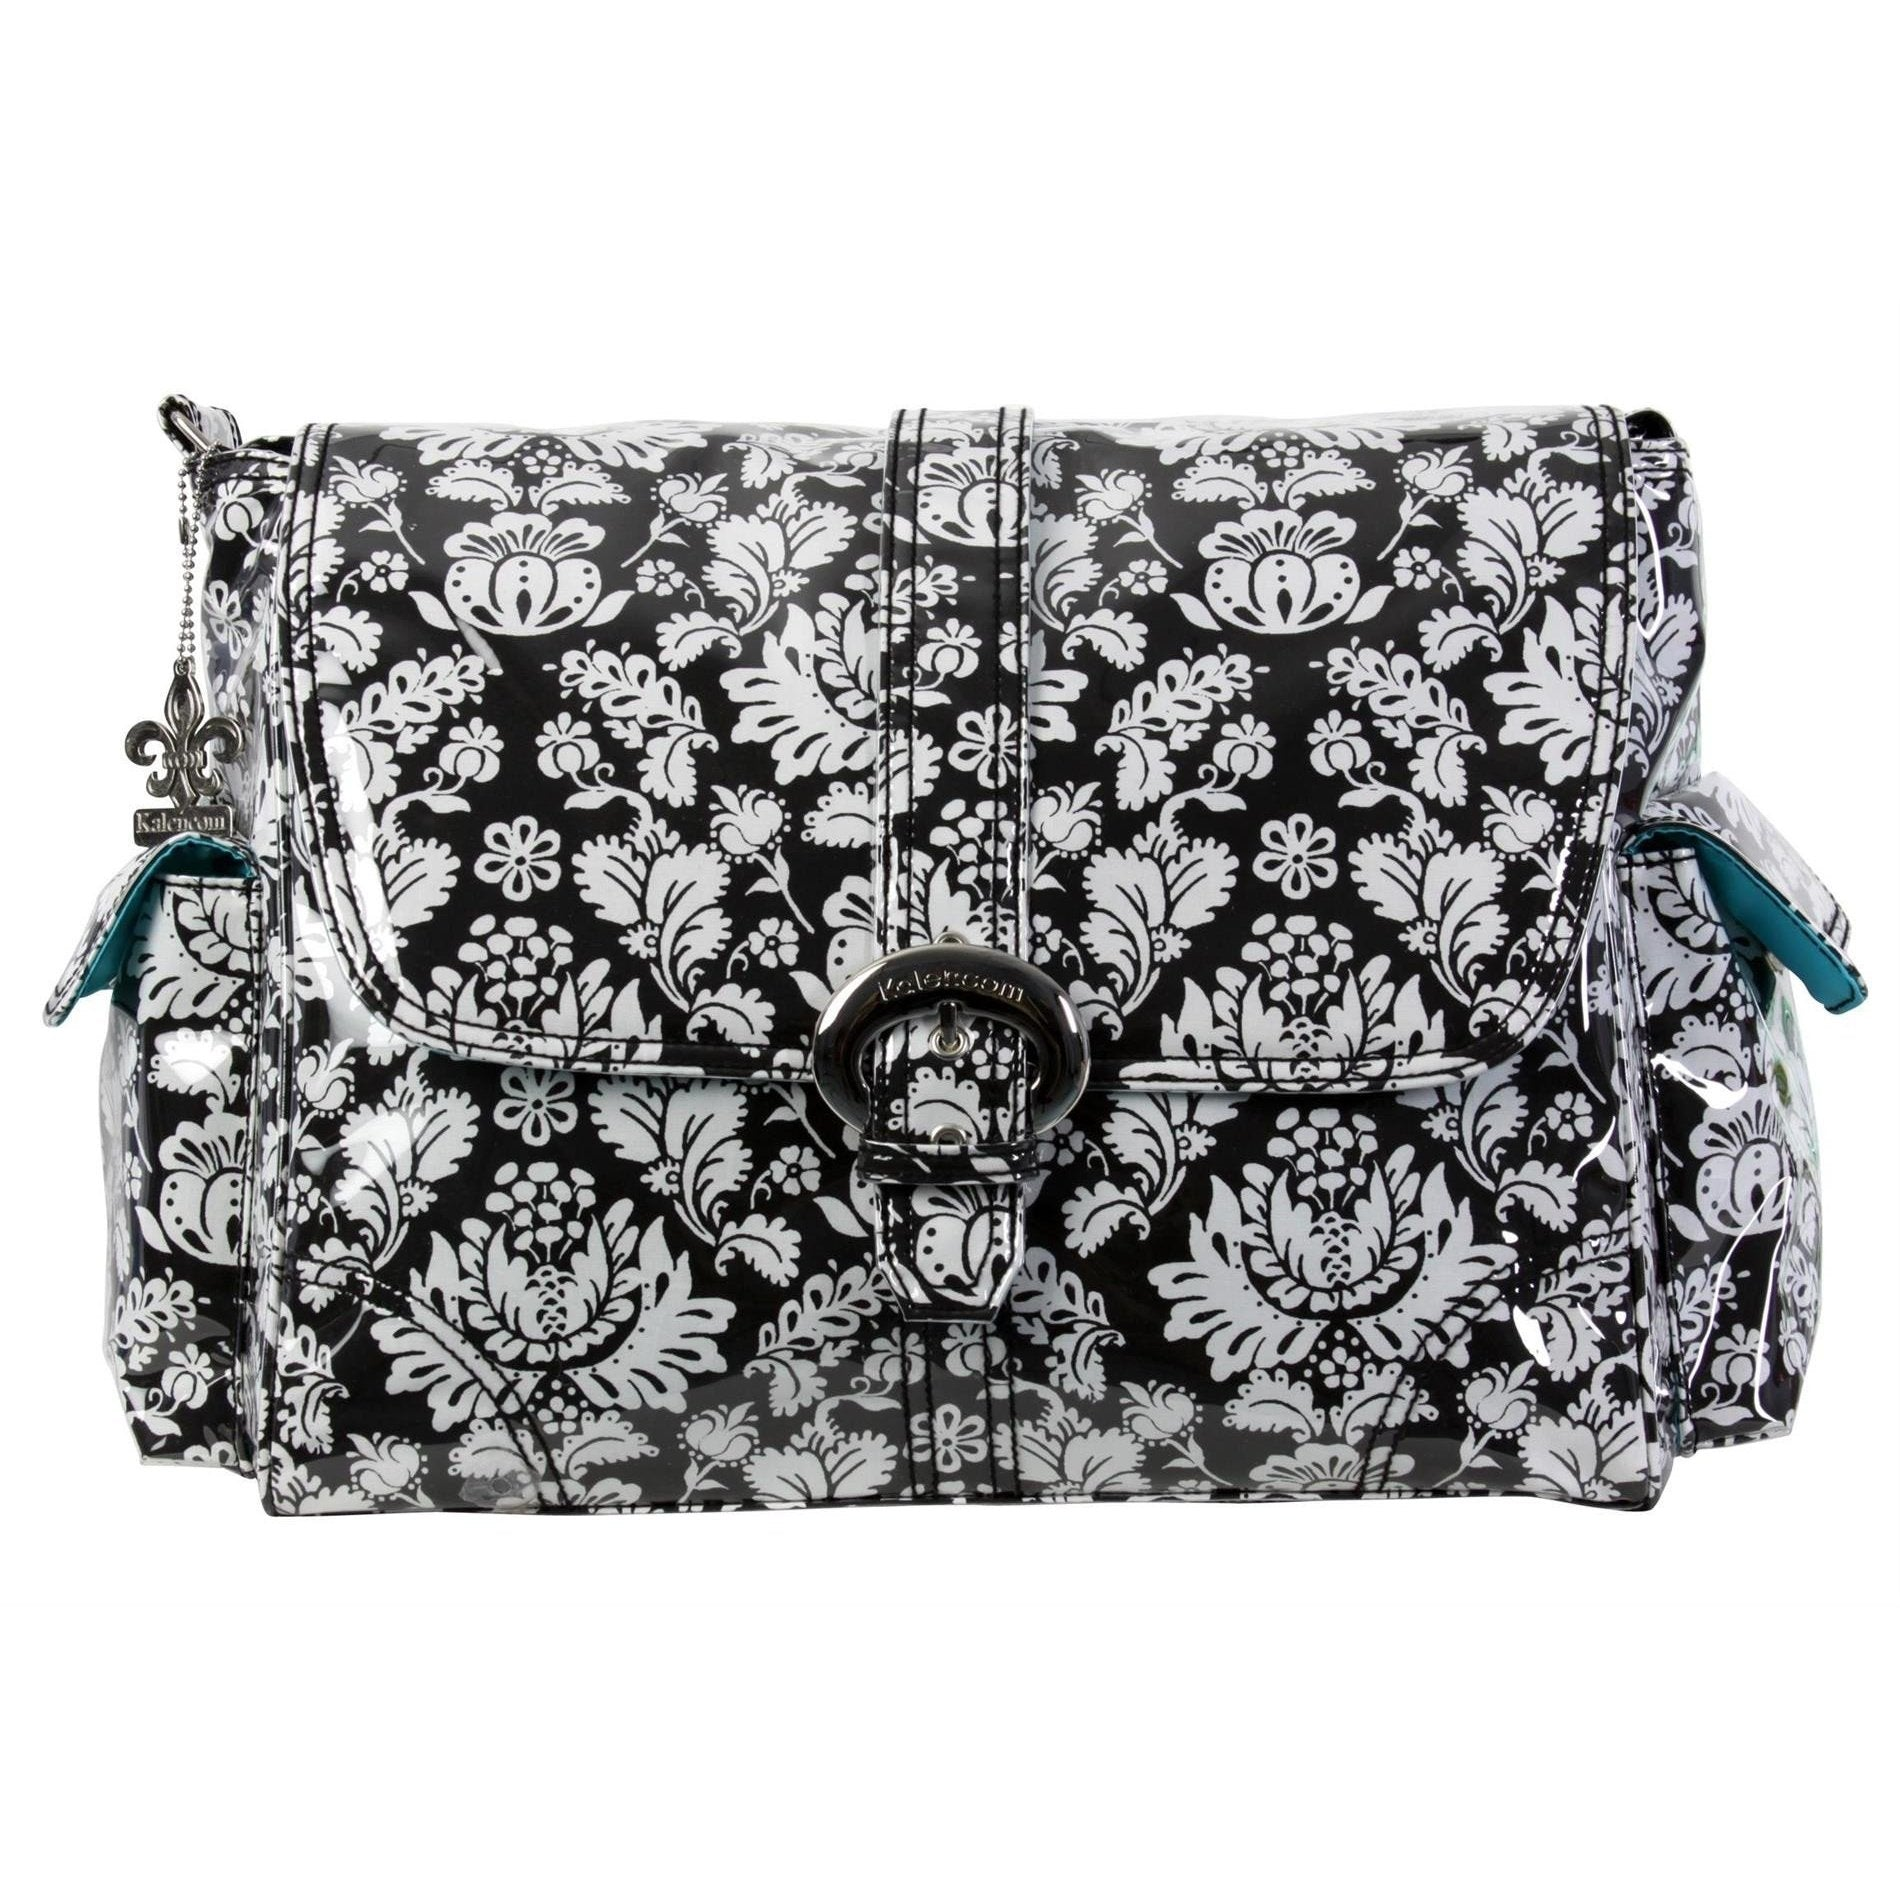 Toile Black & White Laminated Buckle Diaper Bag | Style 2960 - Kalencom-Diaper Bags-Default-Jack and Jill Boutique